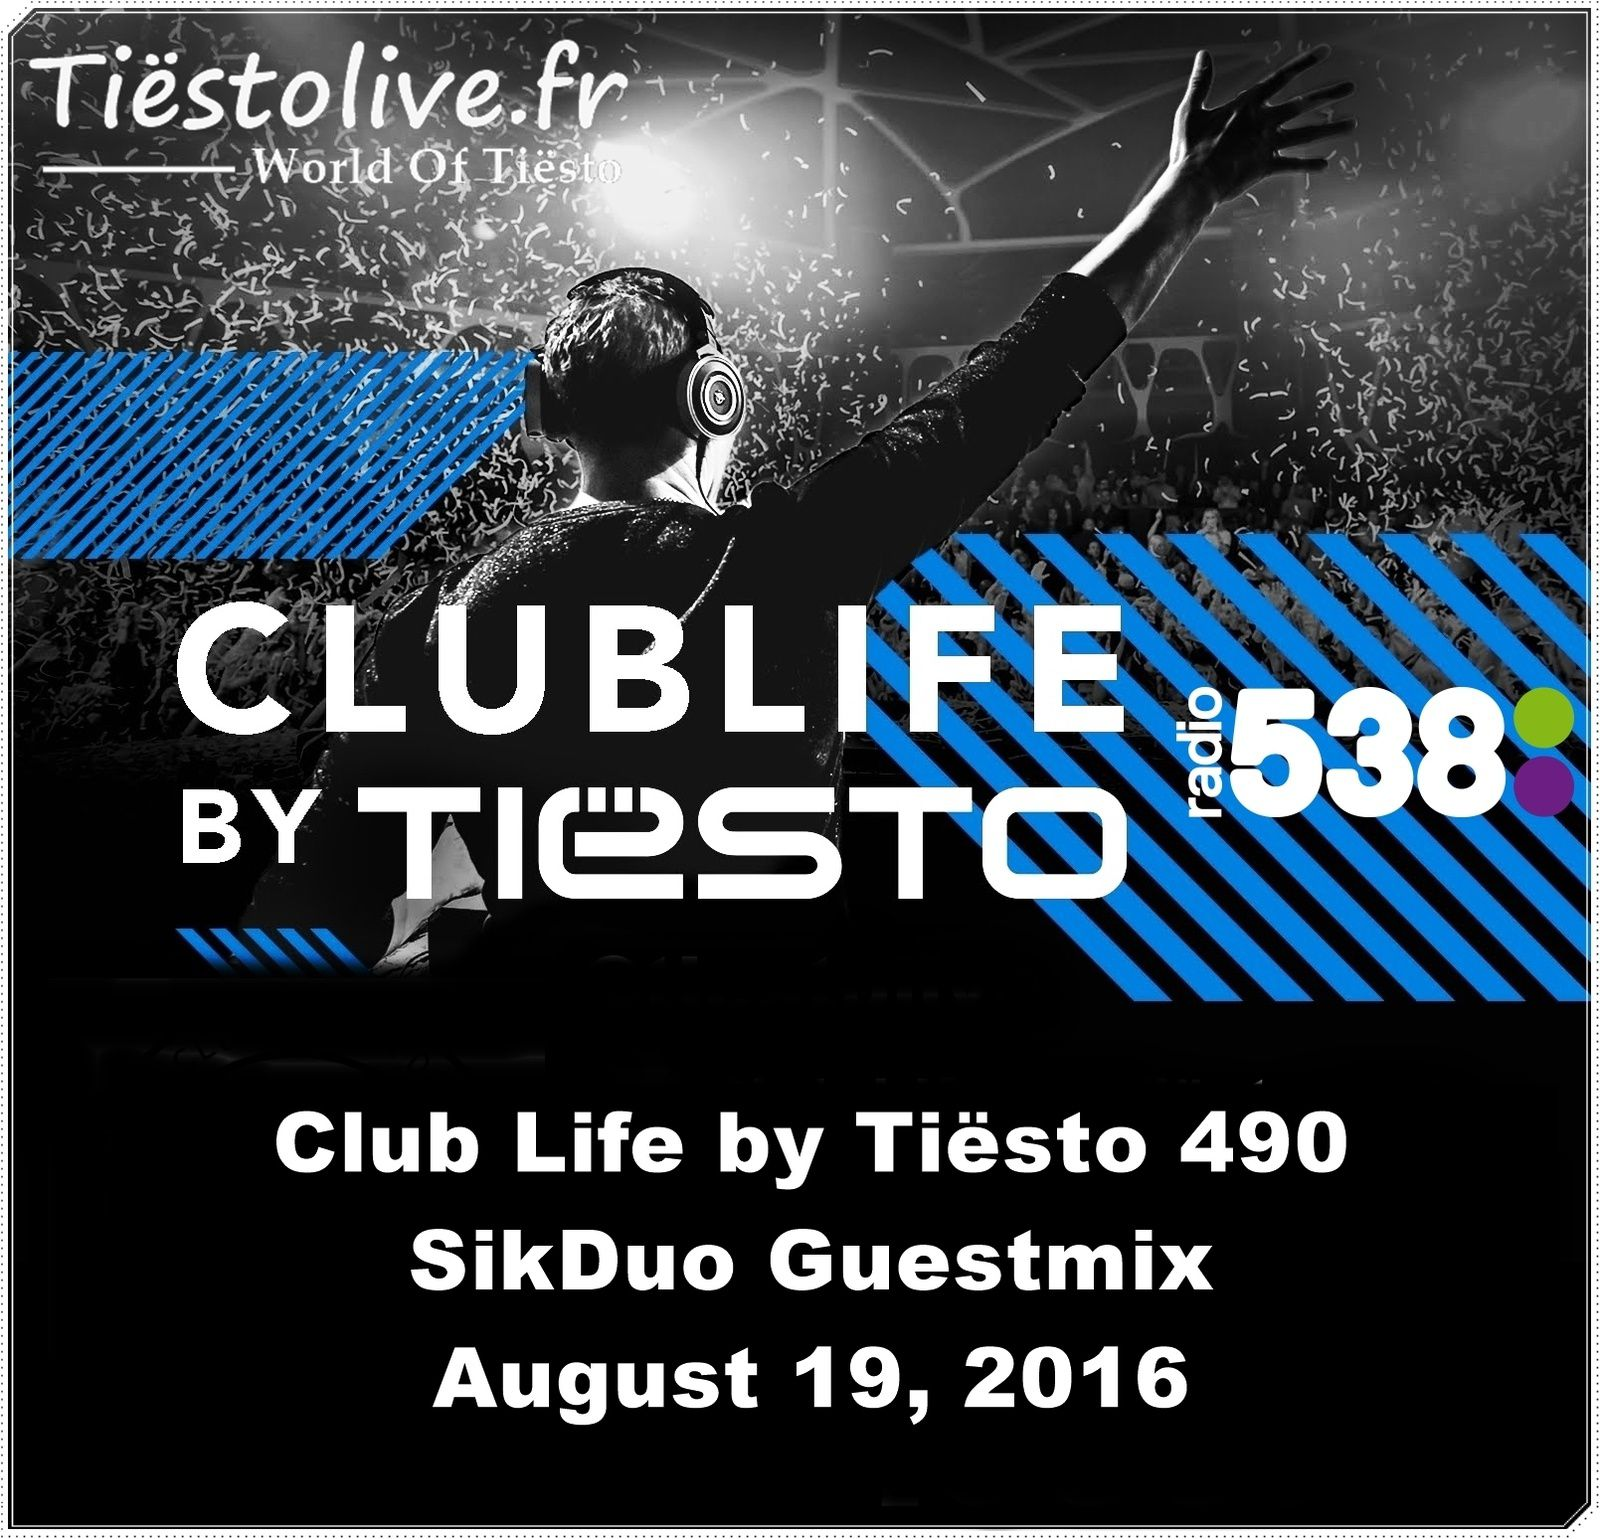 Club Life by Tiësto 490 - SikDuo Guestmix - August 19, 2016